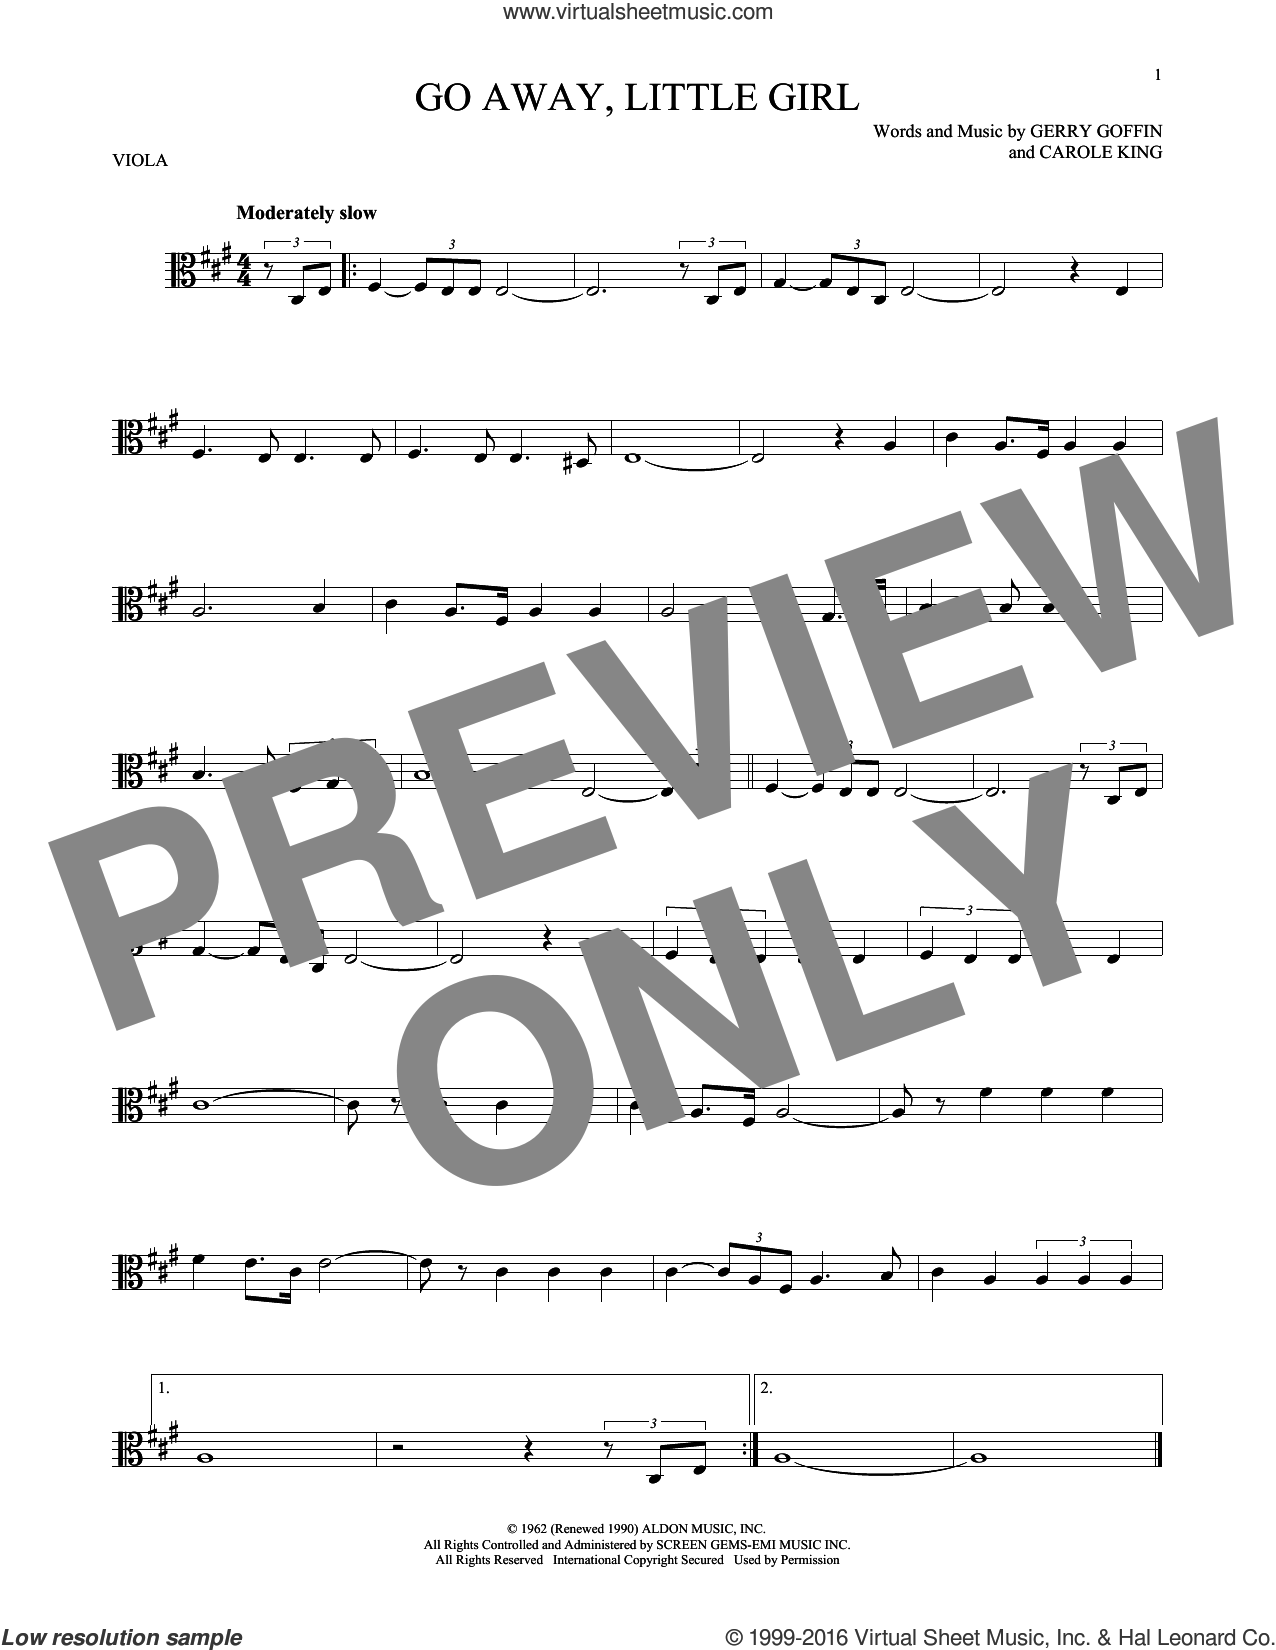 Go Away, Little Girl sheet music for viola solo by Donny Osmond, Steve Lawrence, Carole King and Gerry Goffin, intermediate skill level